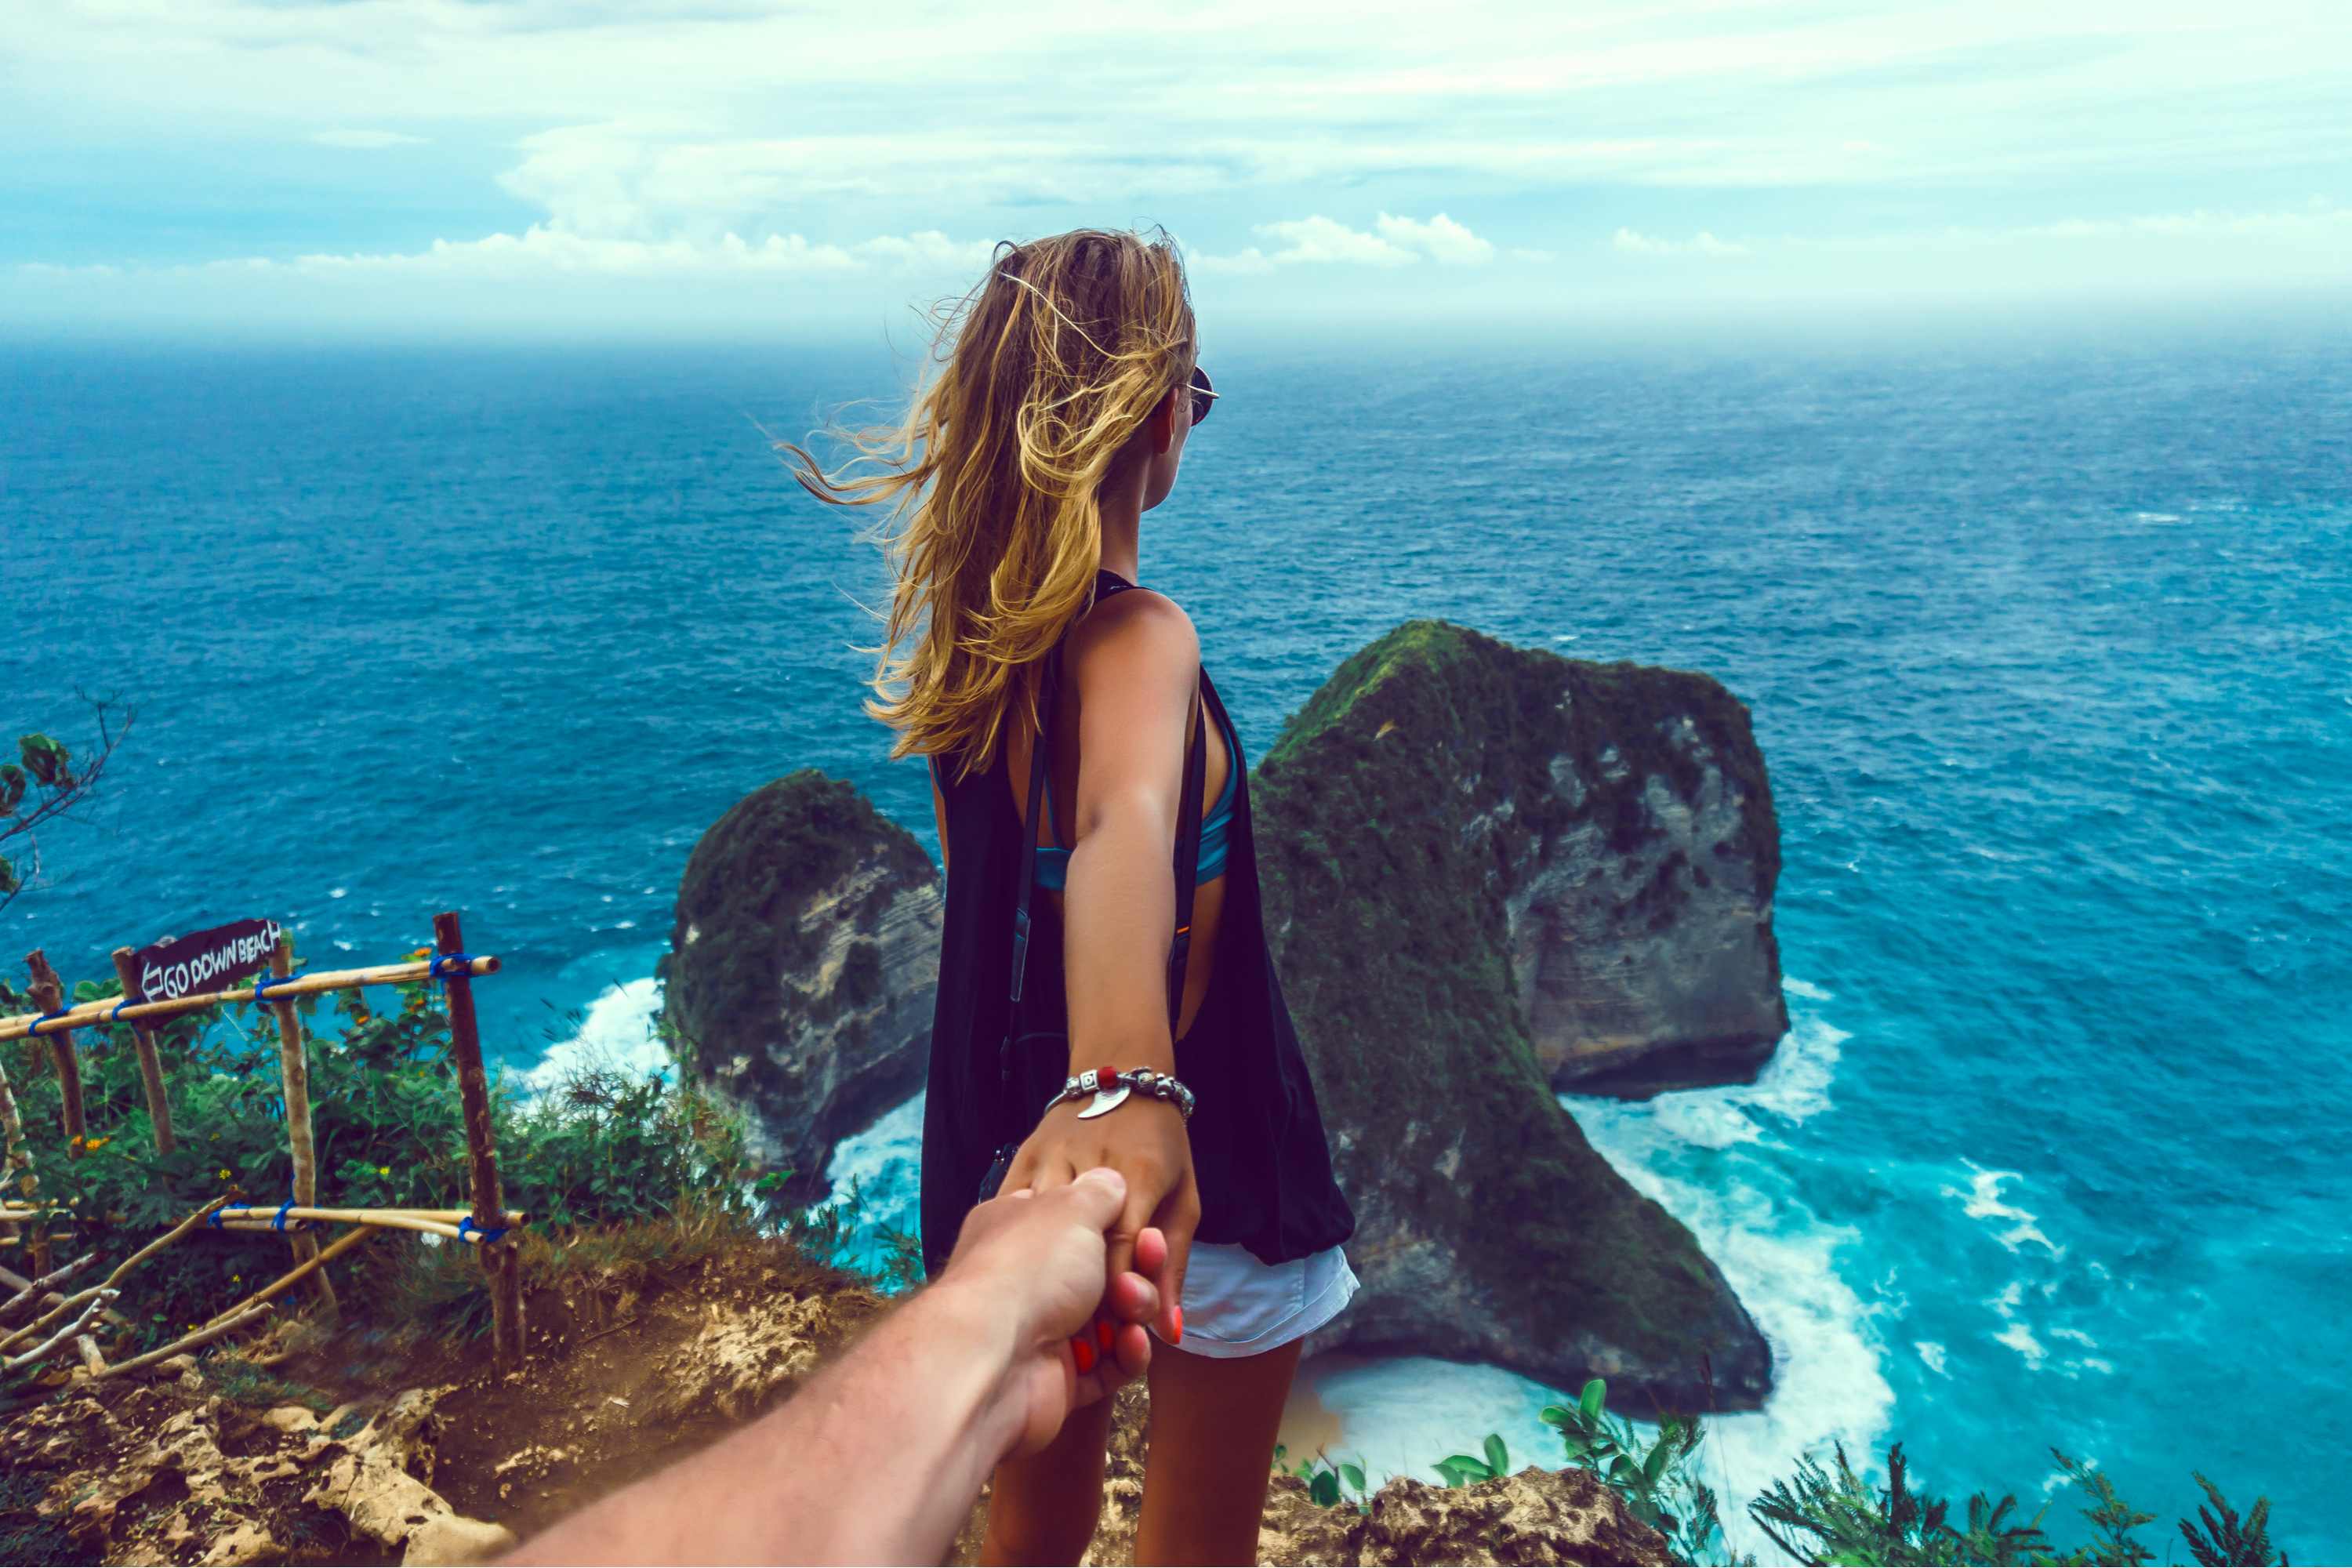 traveling couples | couples who travel | traveling | travel tips | tips and tricks for traveling | vacation tips